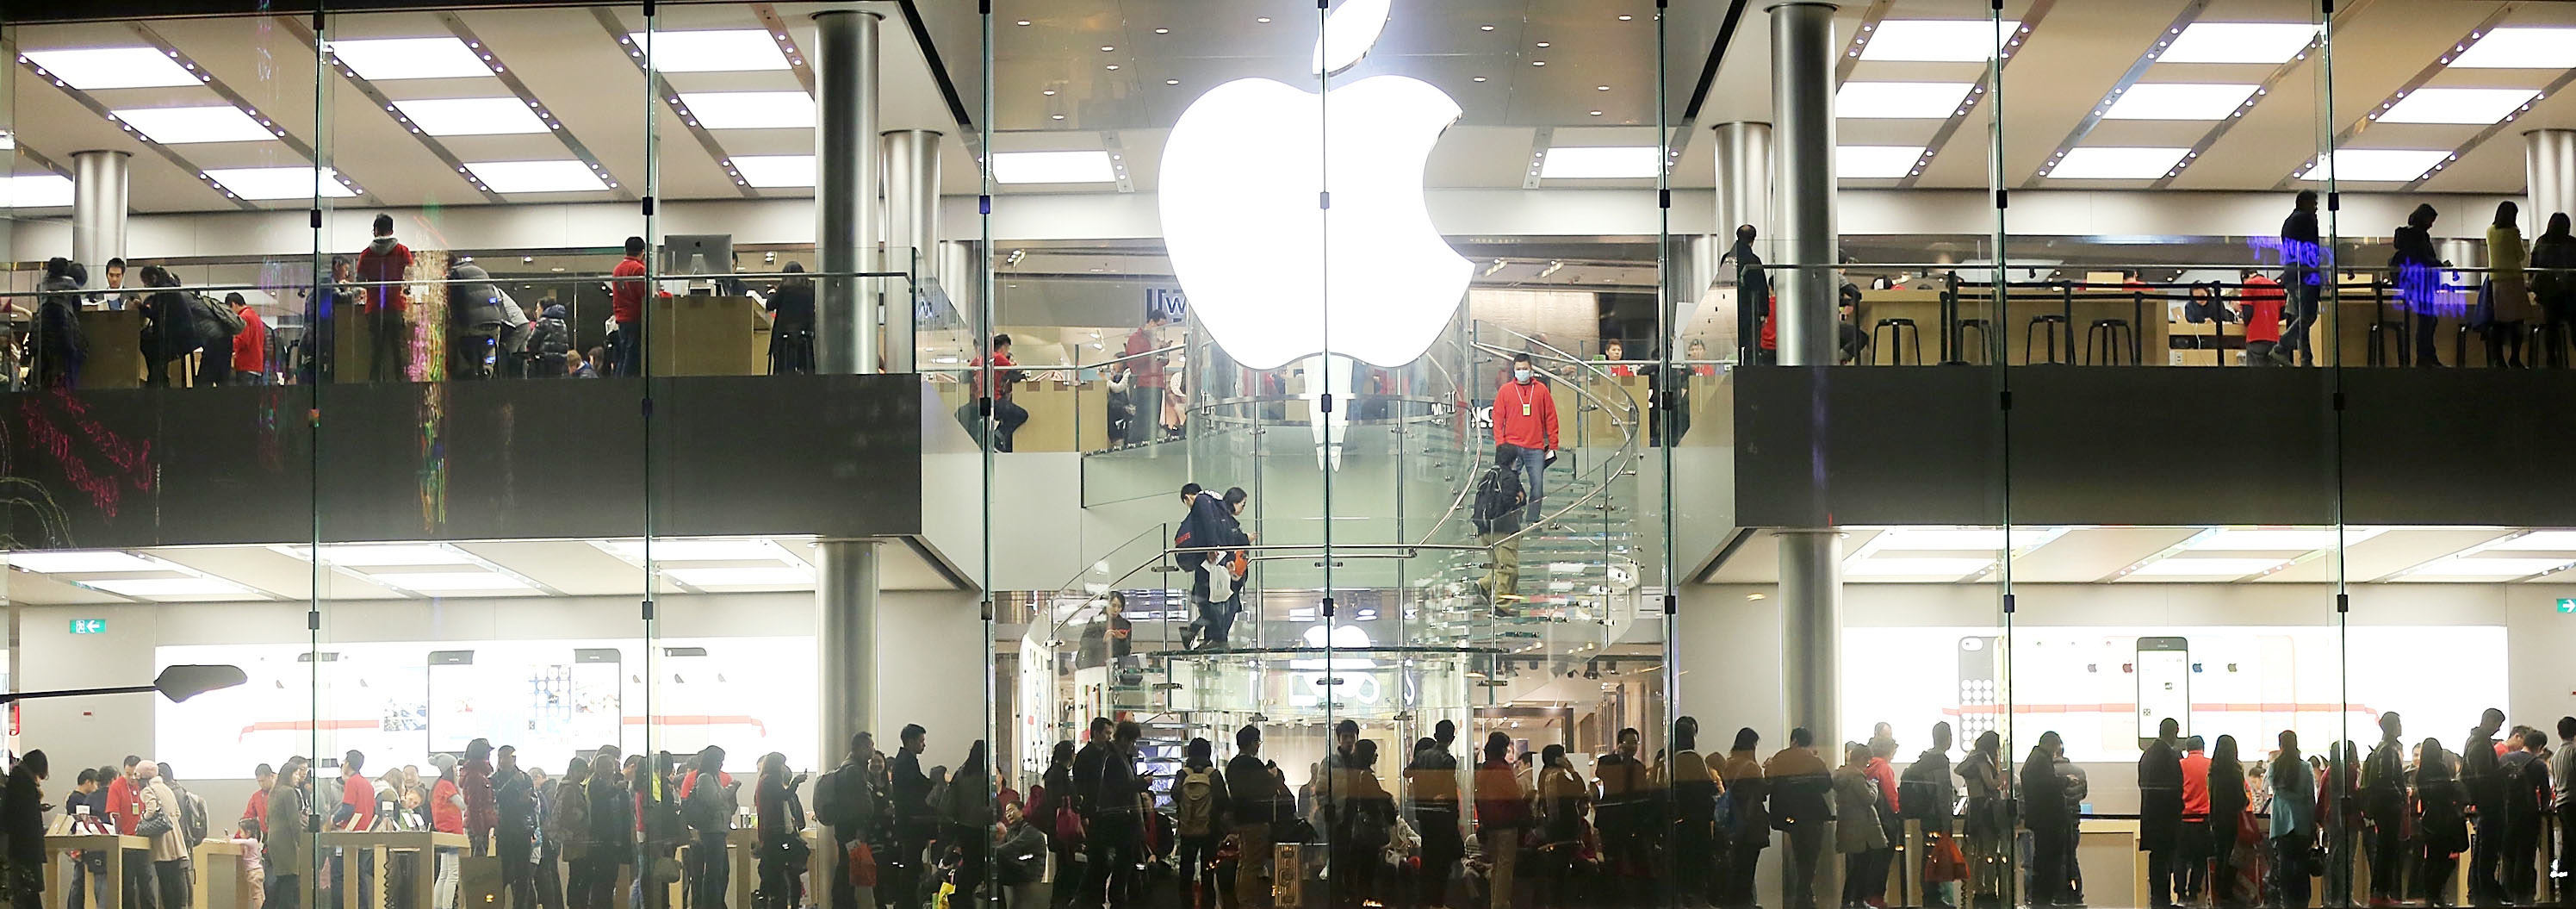 What to expect from Apple in 2014: A new product category and the beginnings of convergence